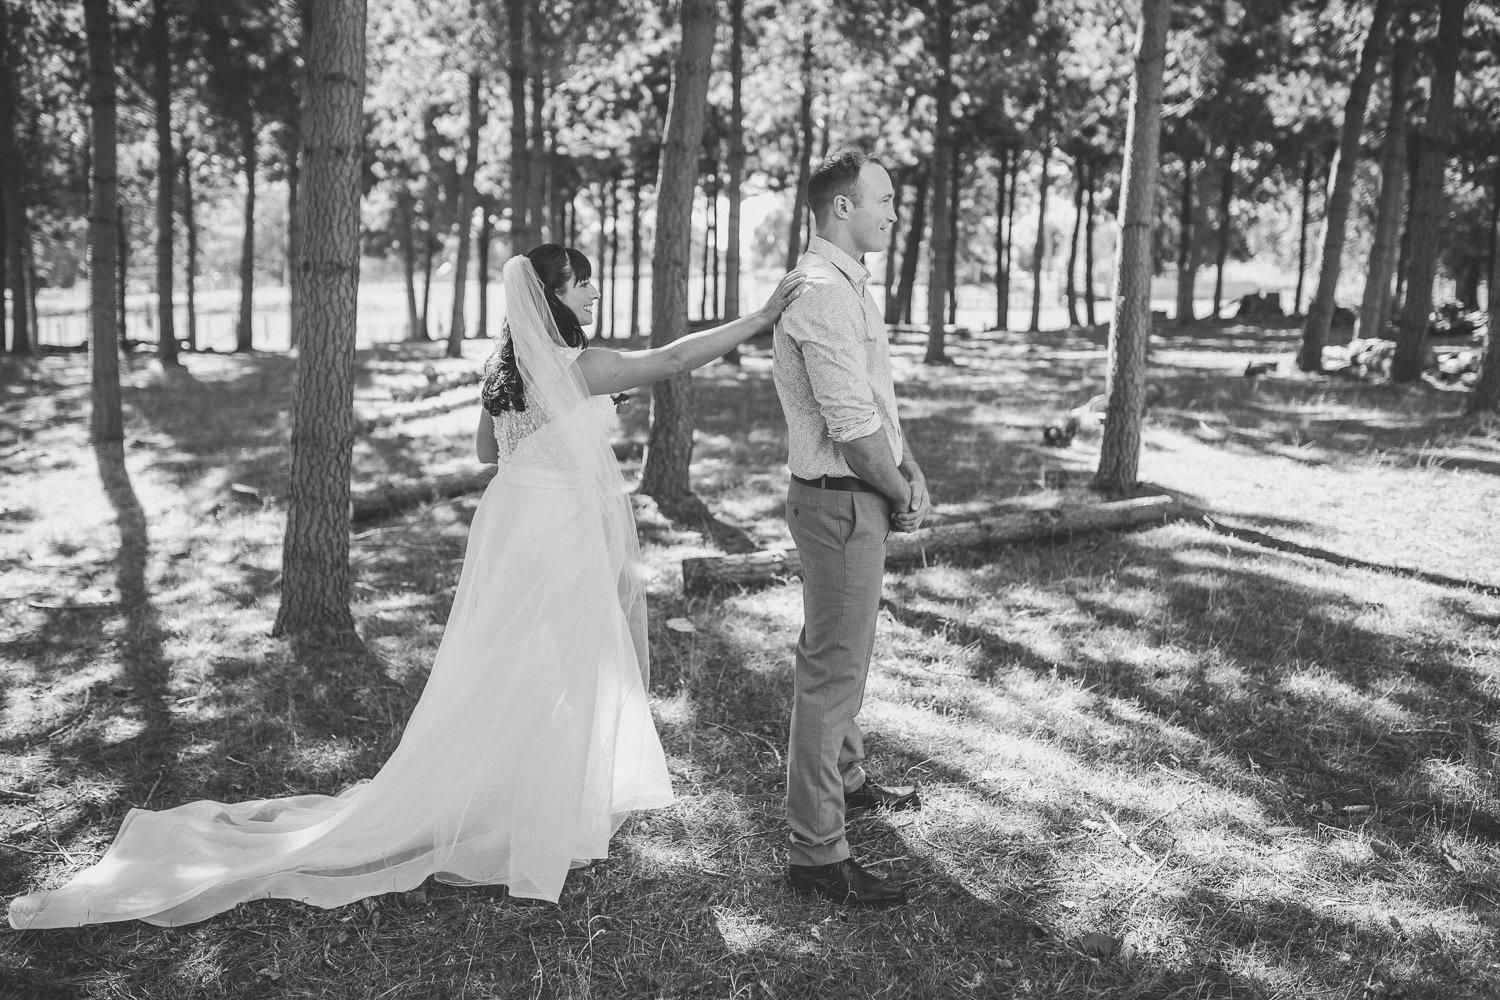 A Topp Wedding The First Look